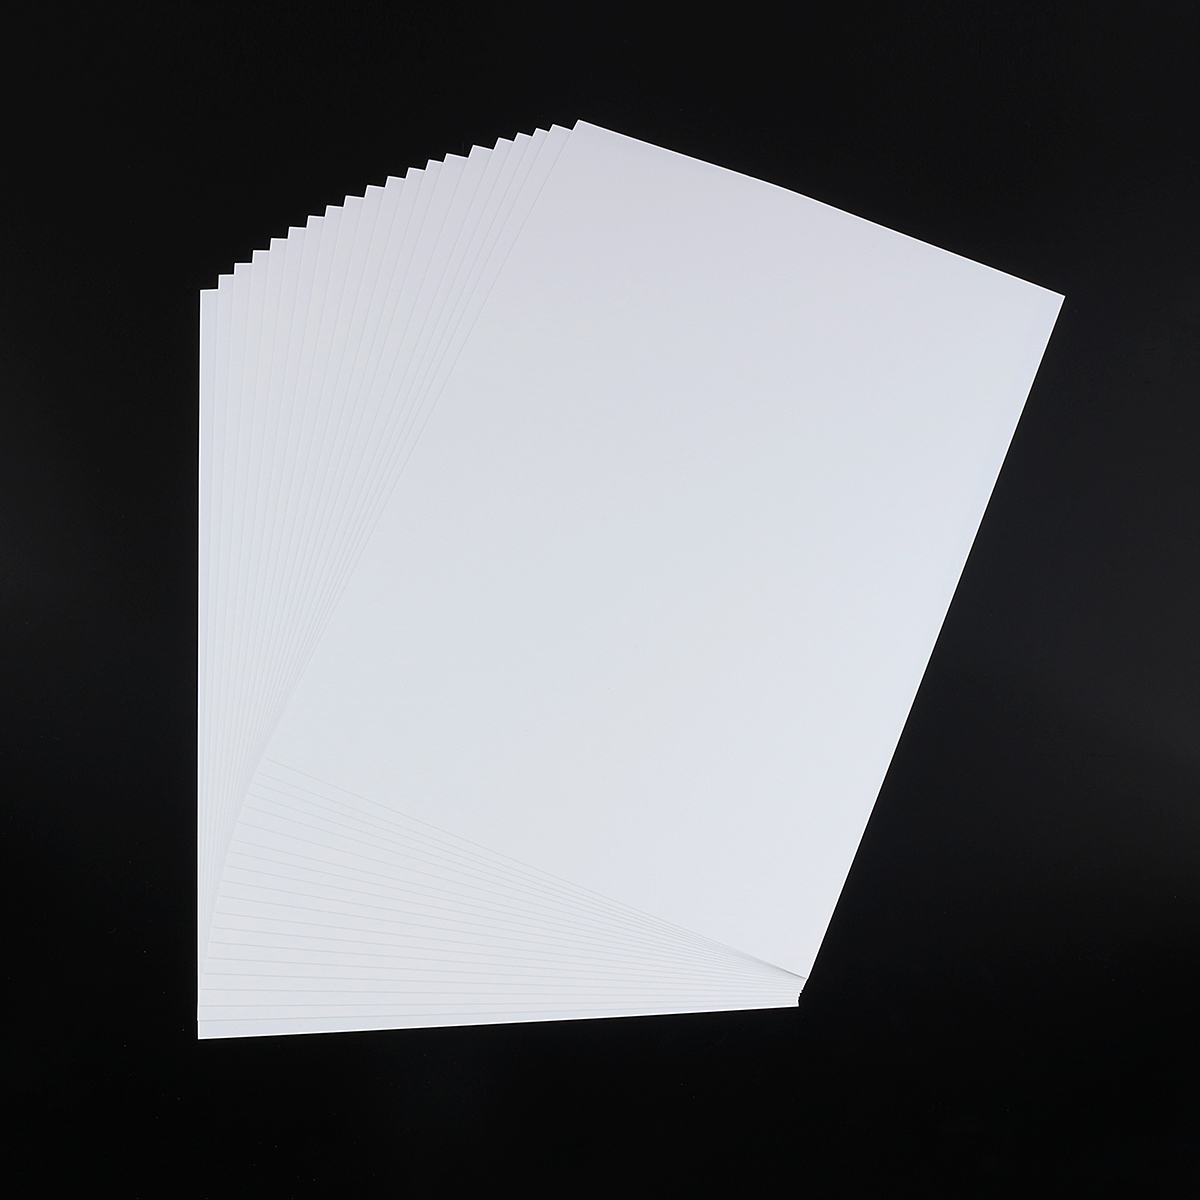 Pairi 20PCS A4 Inkjet Photo Print Paper Light Water Transfer Paper Cup Decal Craft